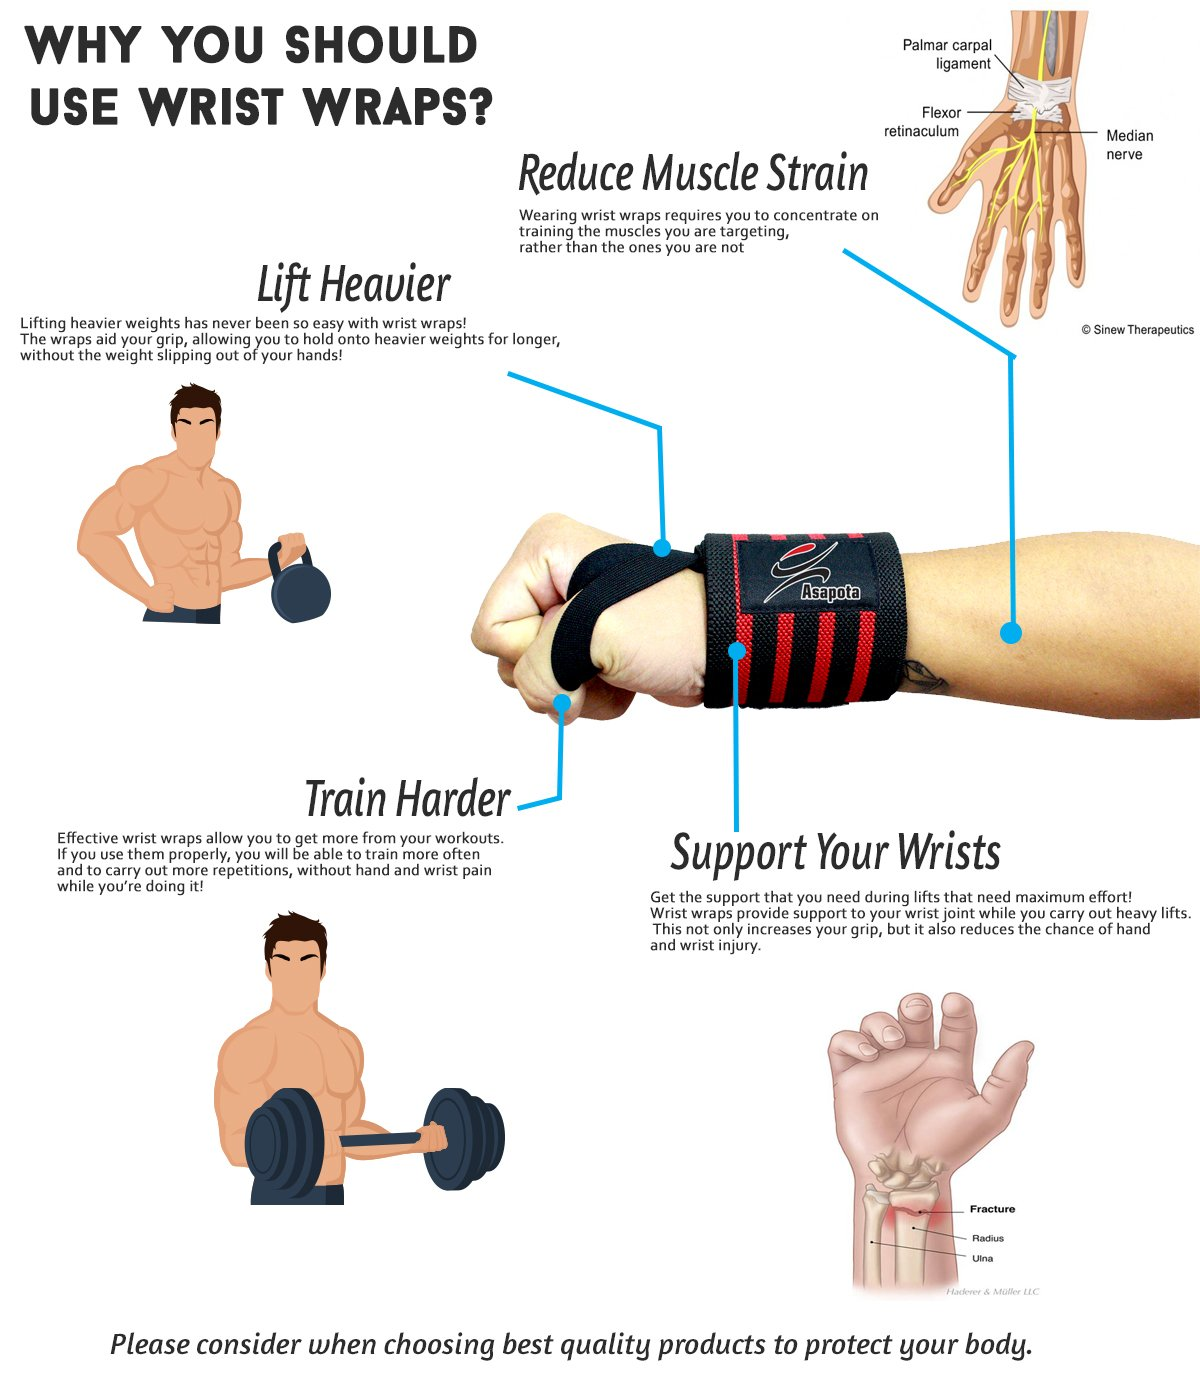 Wrist Wraps for Bodybuilding, Gym, Kettlebells, Workout, Strength Training, Weightlifting, Powerlifting, Cross Training - Fitness Wrist Wraps Support for Men/Women - Best Material&Design (red-black)